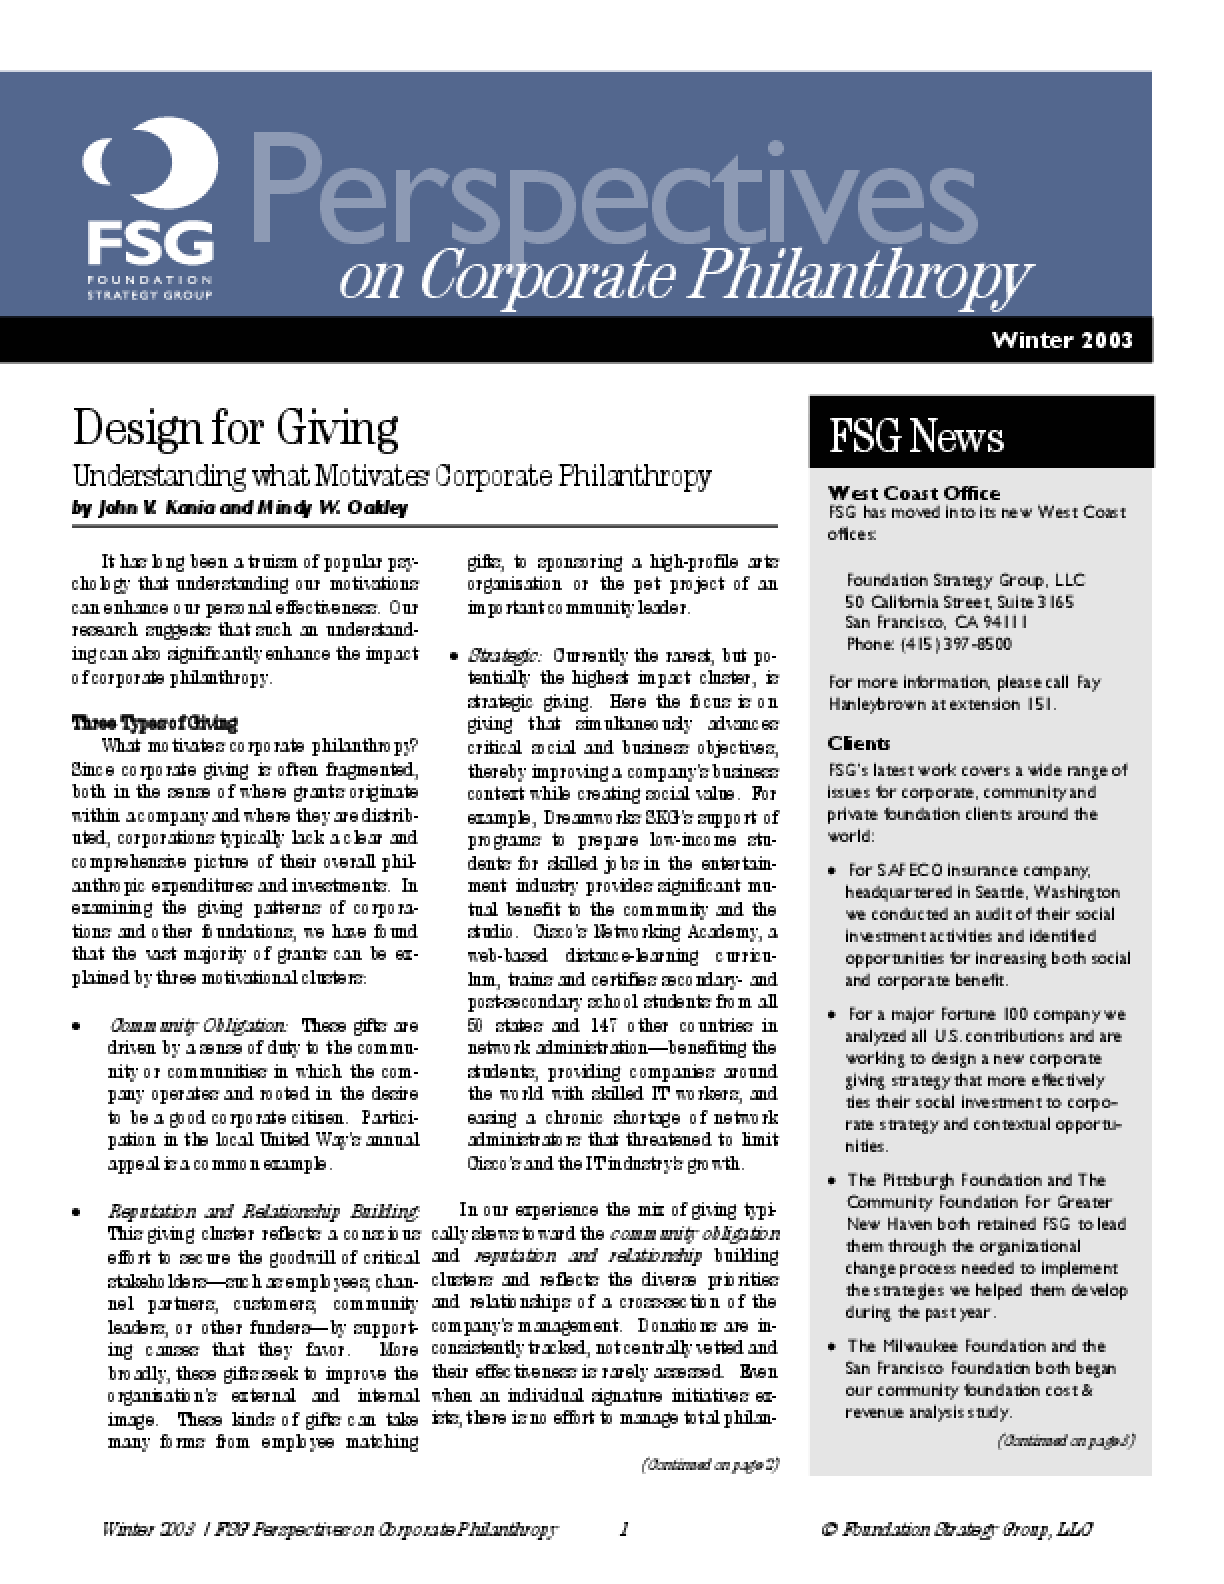 Design for Giving: Understanding What Motivates Corporate Philanthropy